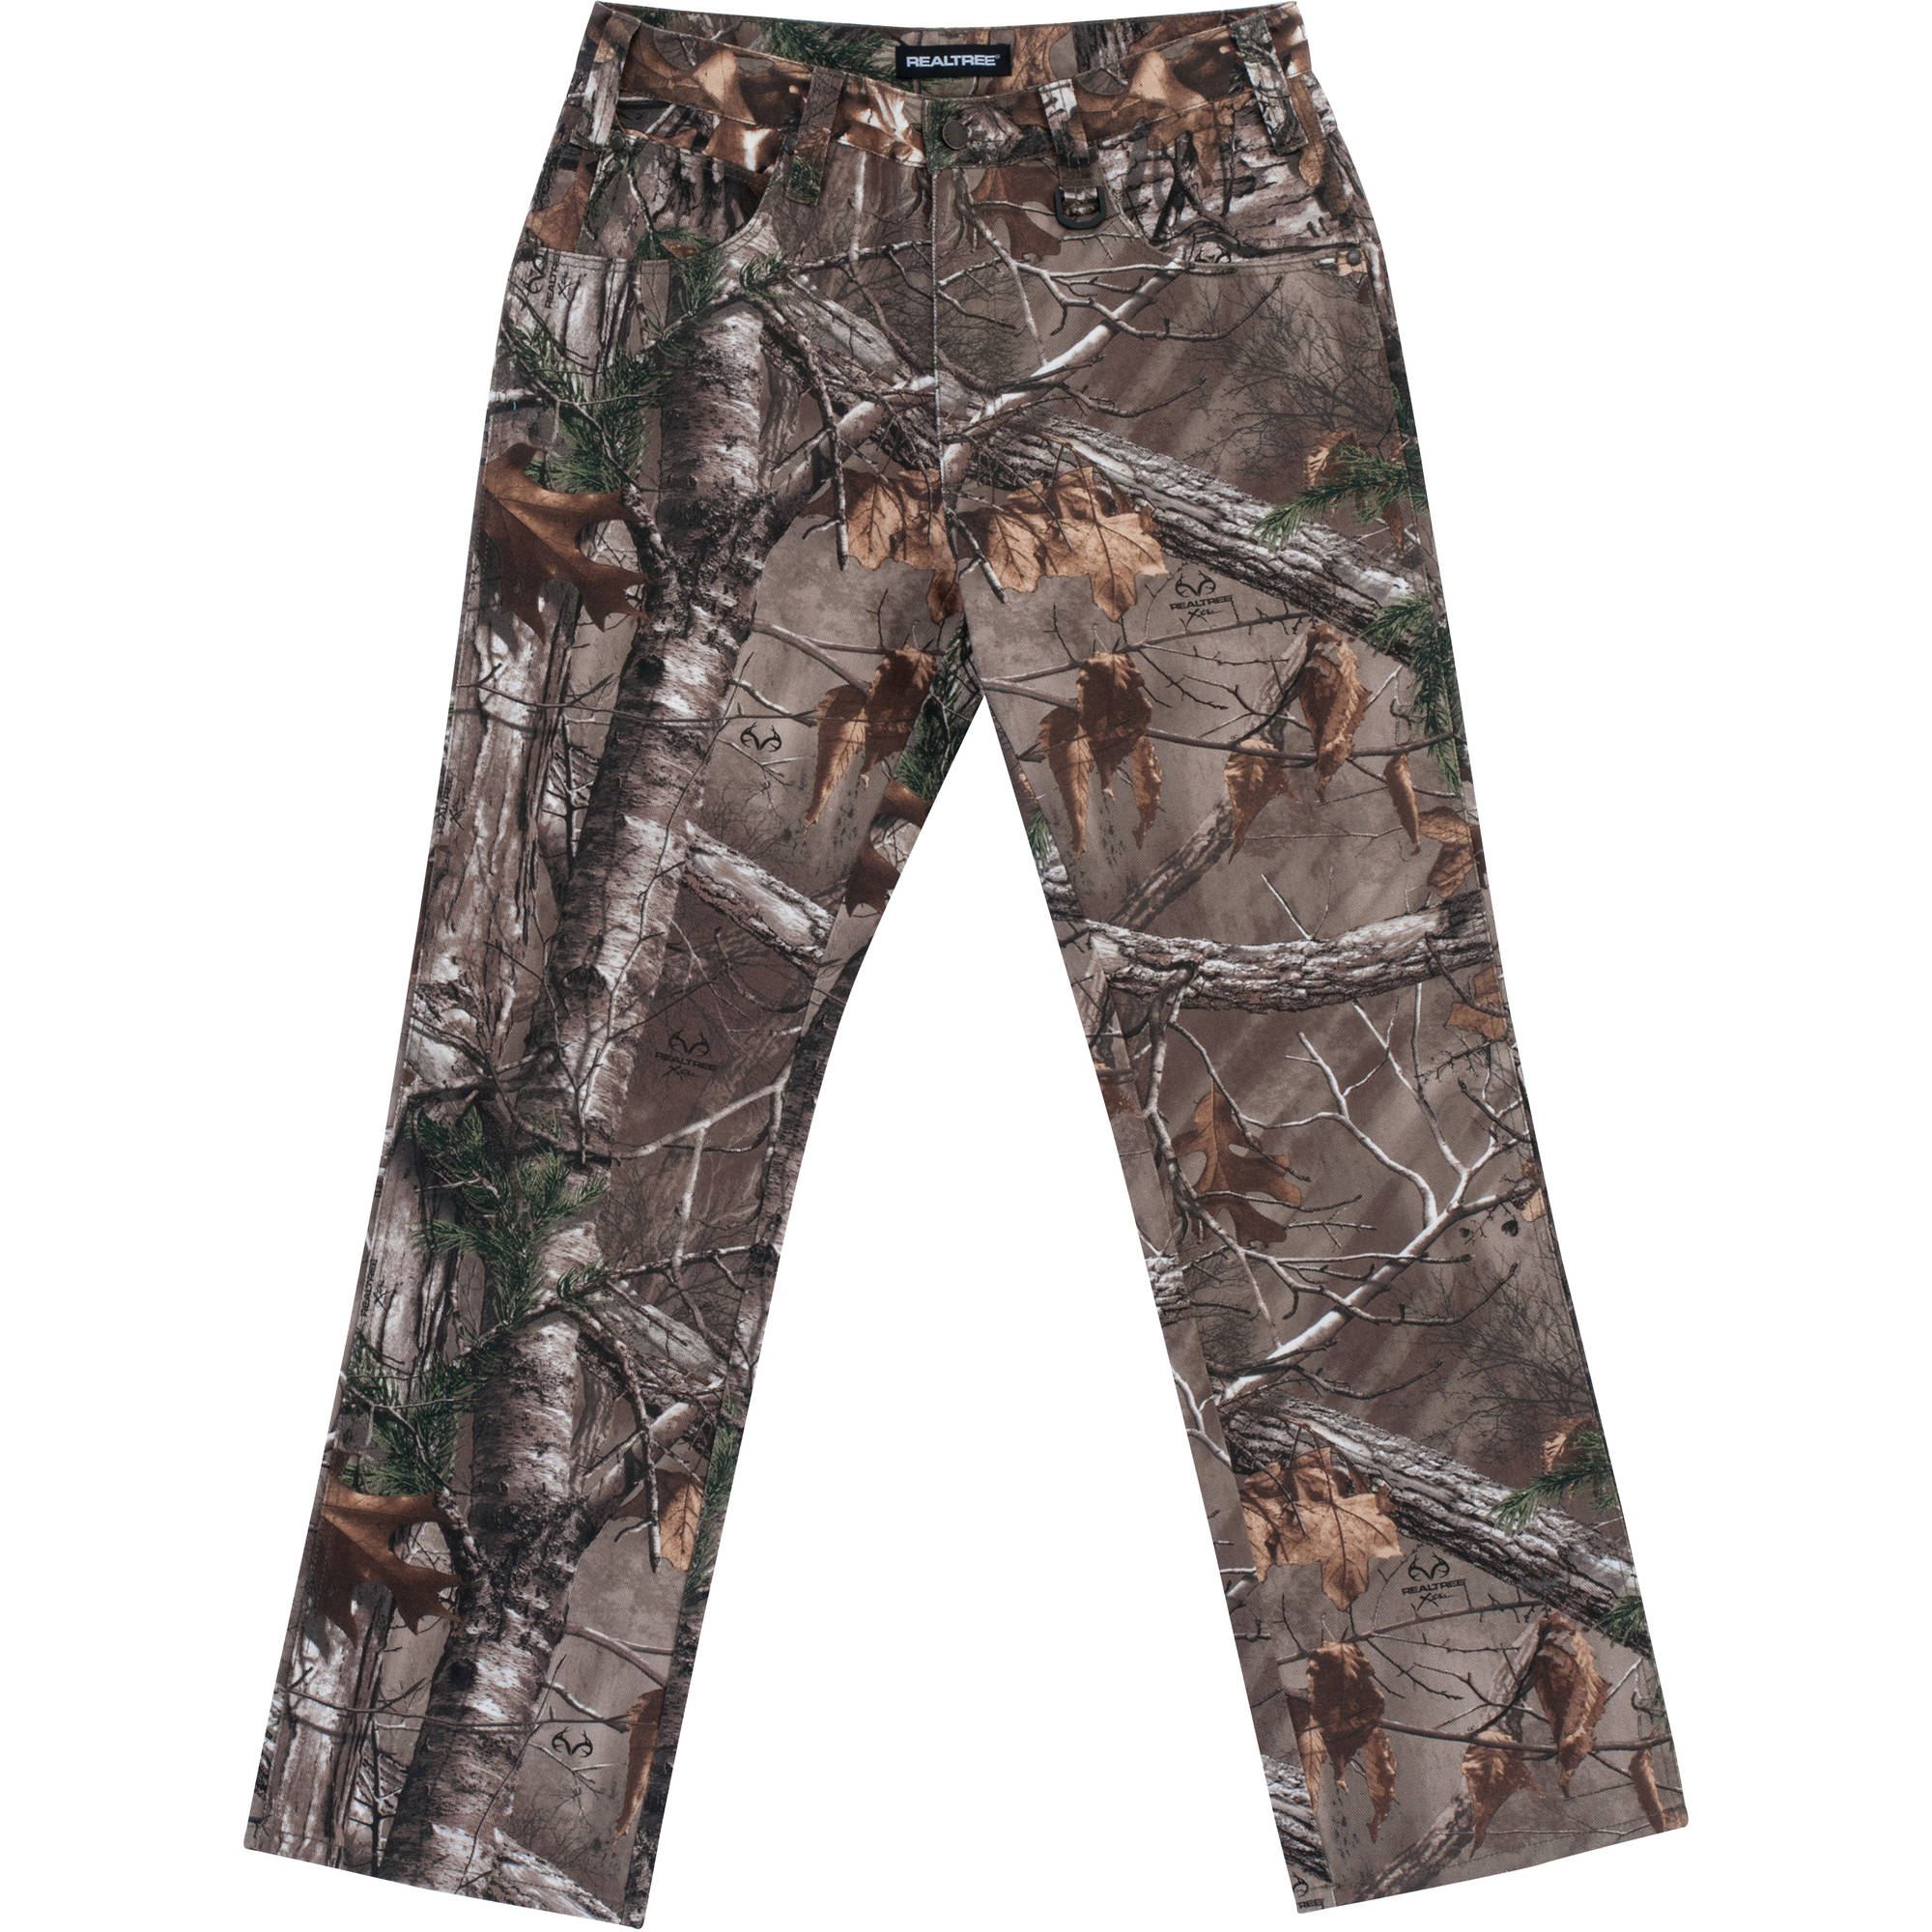 Men's 5-Pocket Pants, Available in Realtree and Mossy Oak